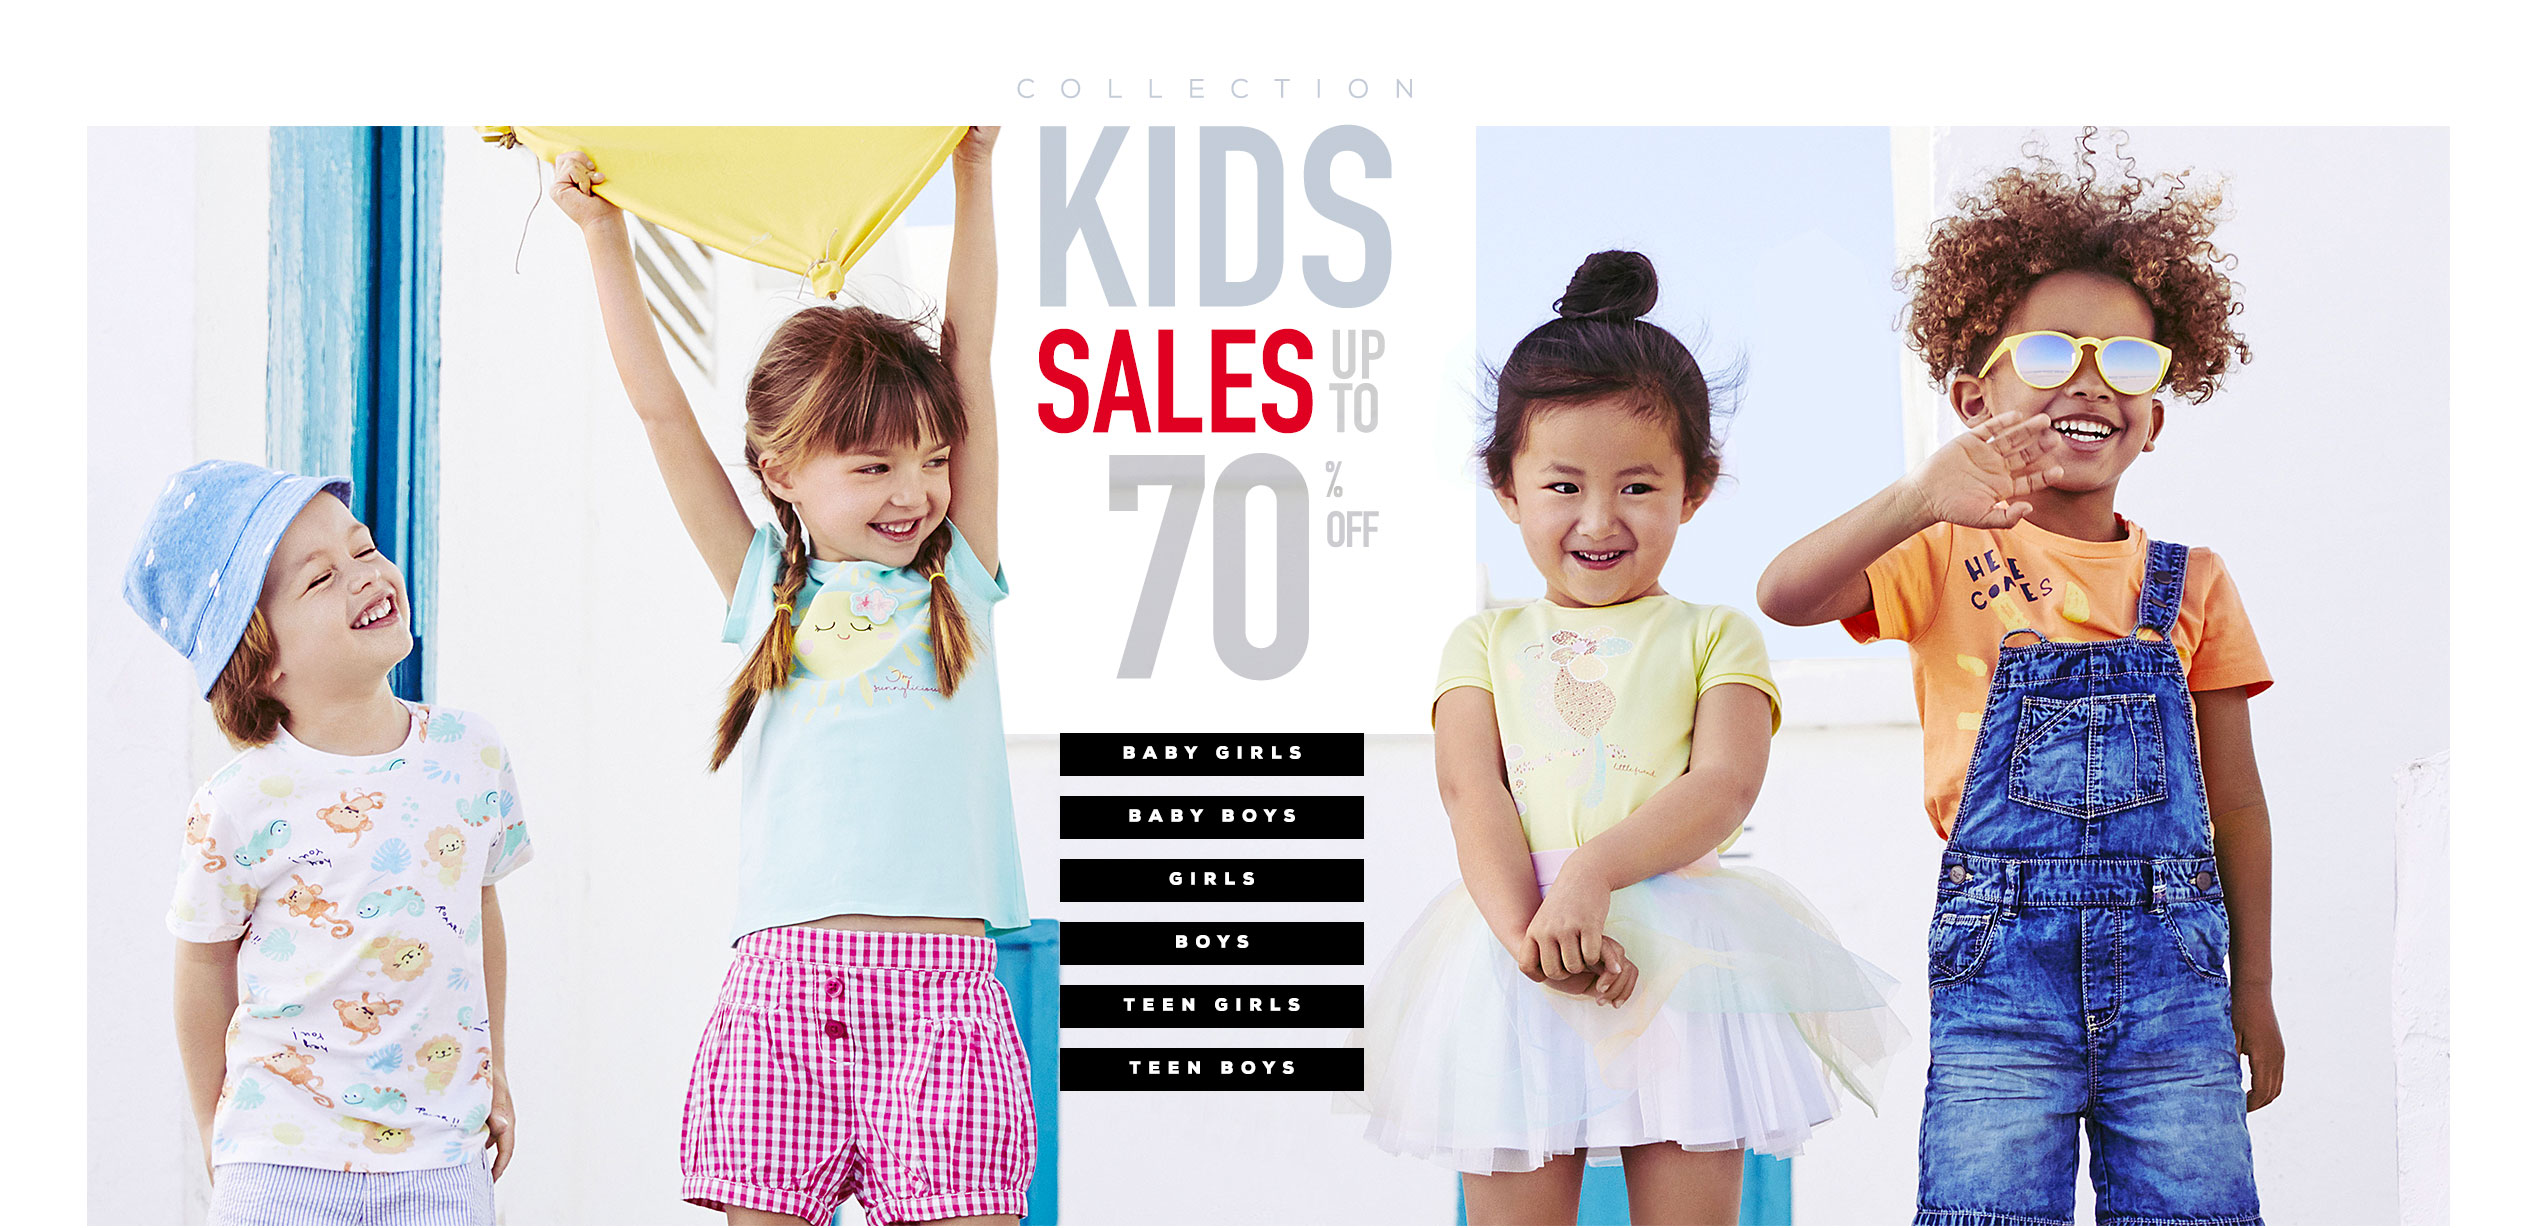 3d4ae9d15 ONLINE CLOTHING: CASUAL, ON-TREND STYLES FOR MEN, WOMEN AND KIDS